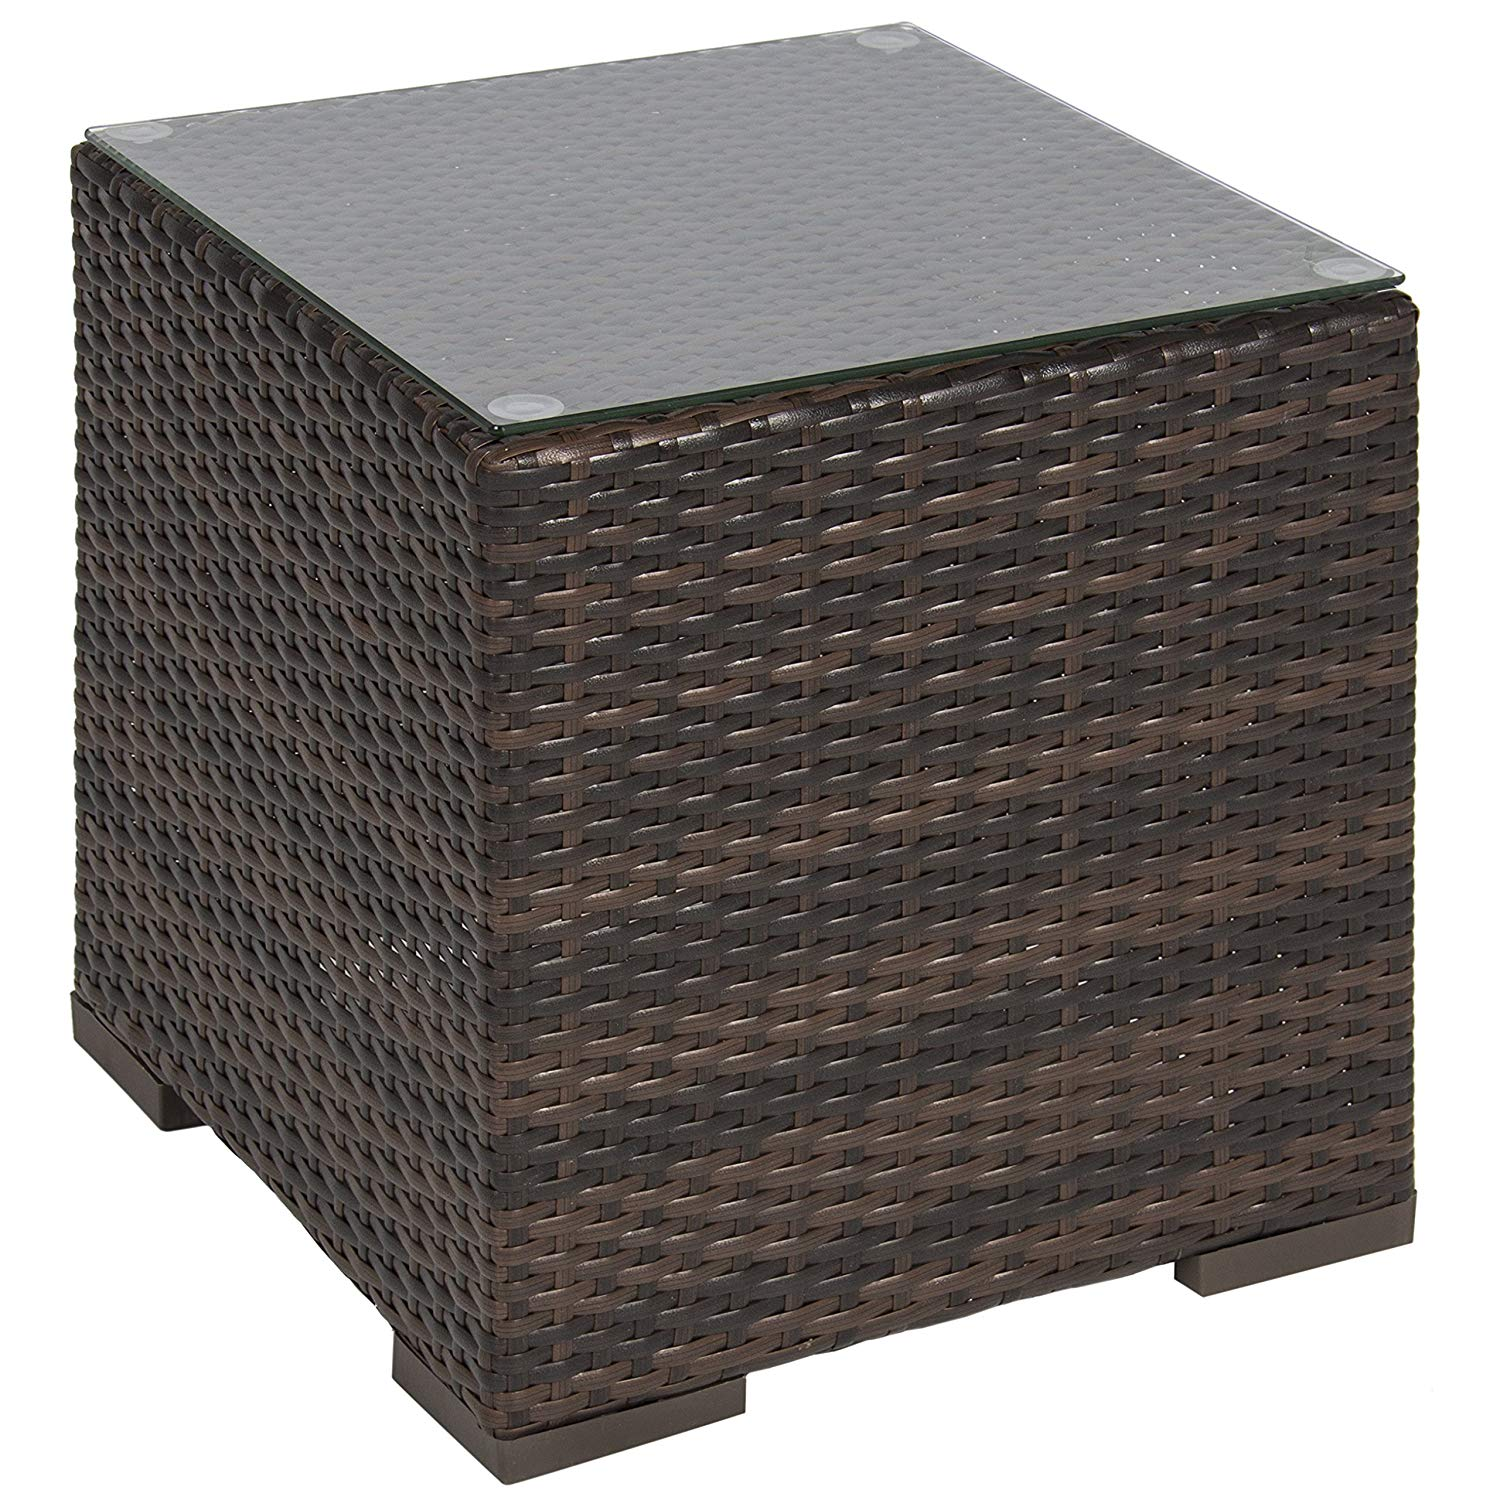 best choice products wicker rattan side table outdoor patio furniture garden deck pool rose gold pub style height gossip bench phone narrow telephone brown leather accent chair